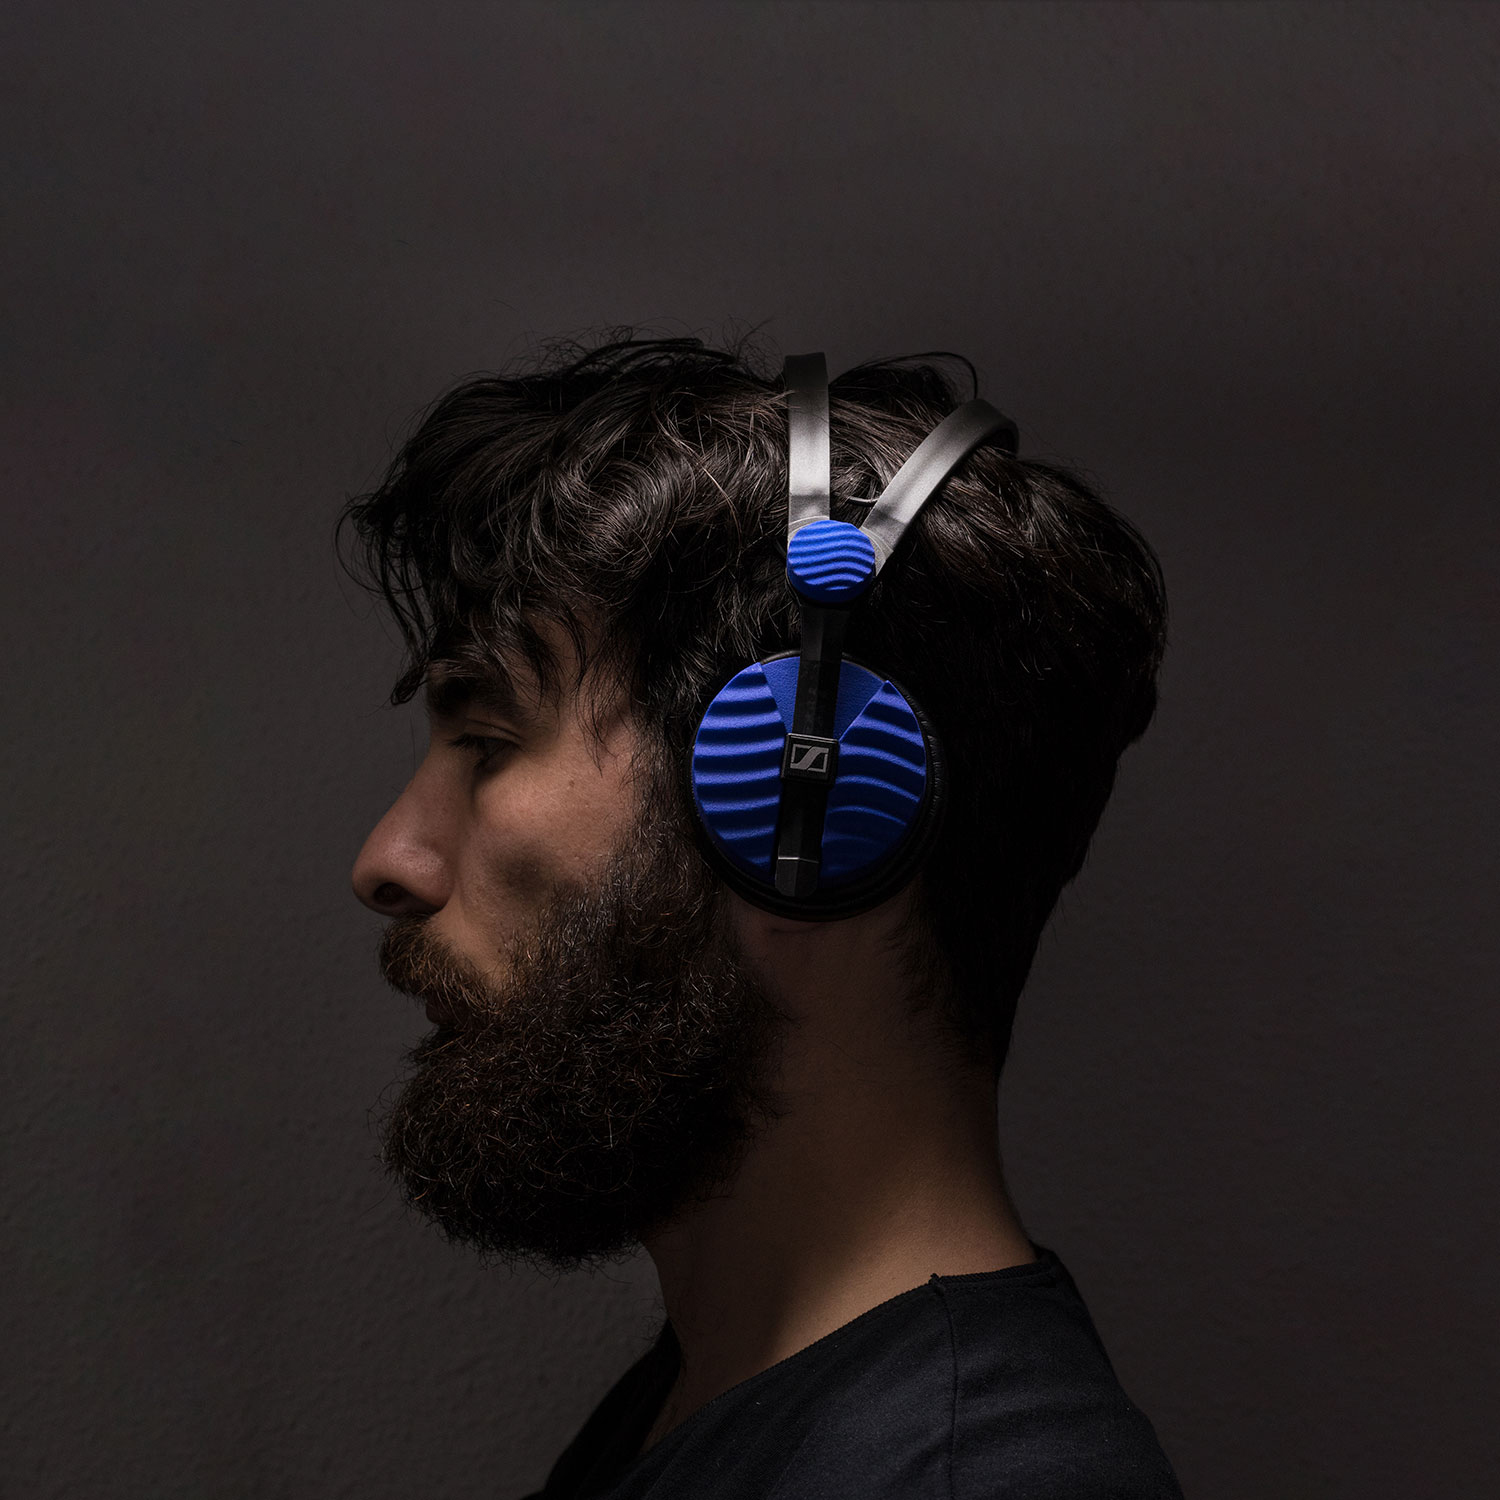 3d-printed headphone accessories